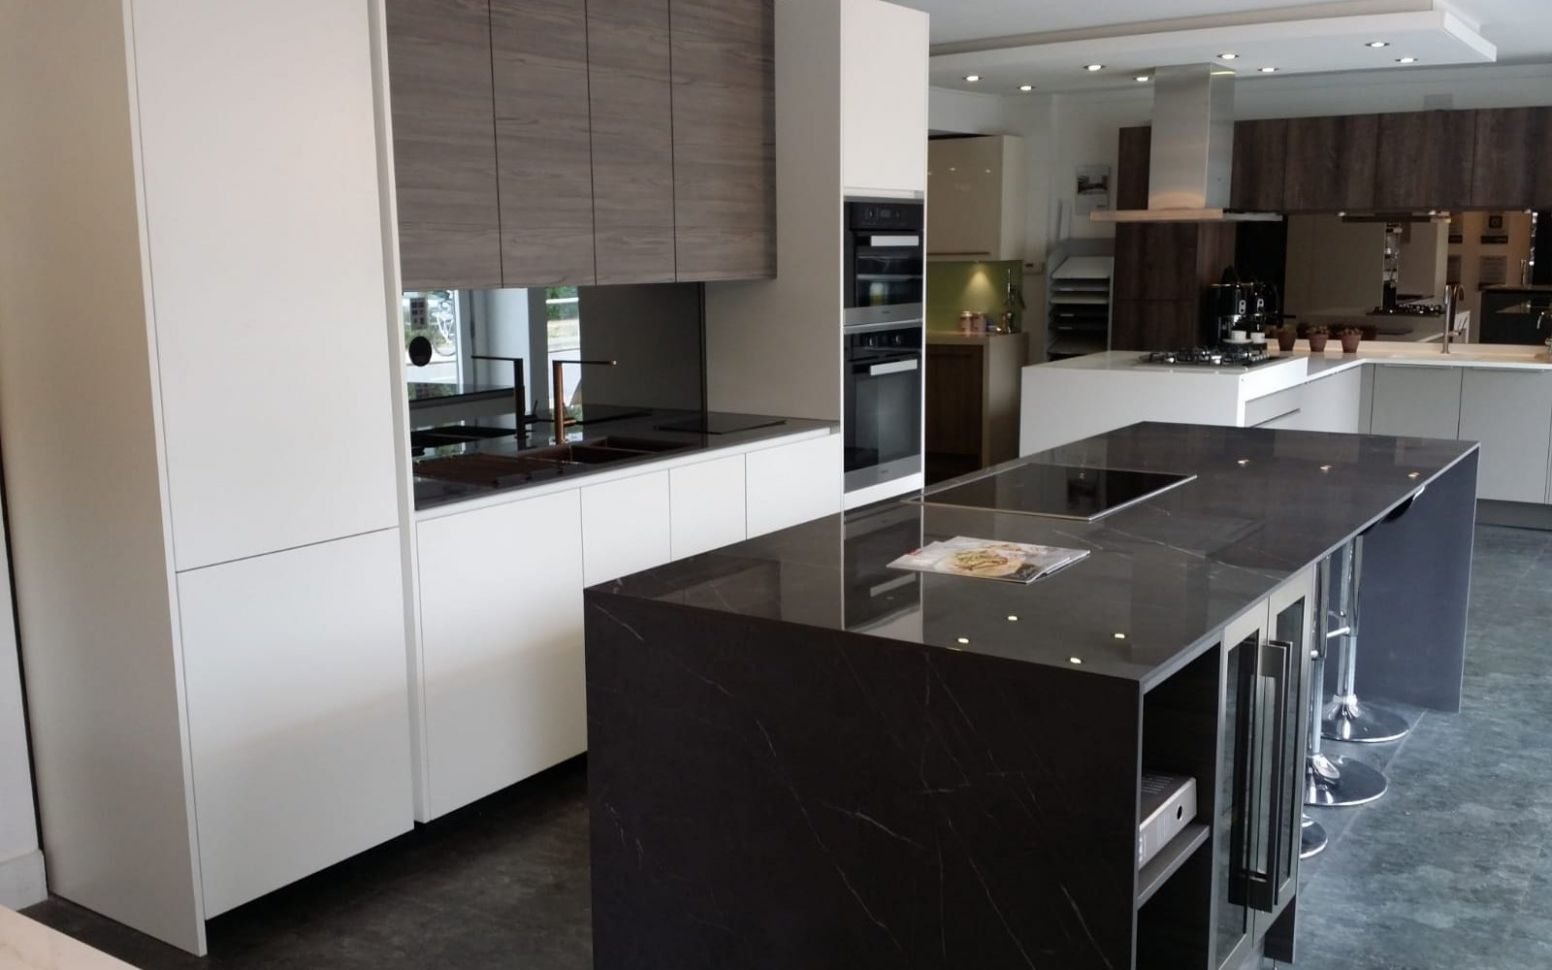 Ealing (London) kitchens - Ealing (London) fitted kitchens - in ..